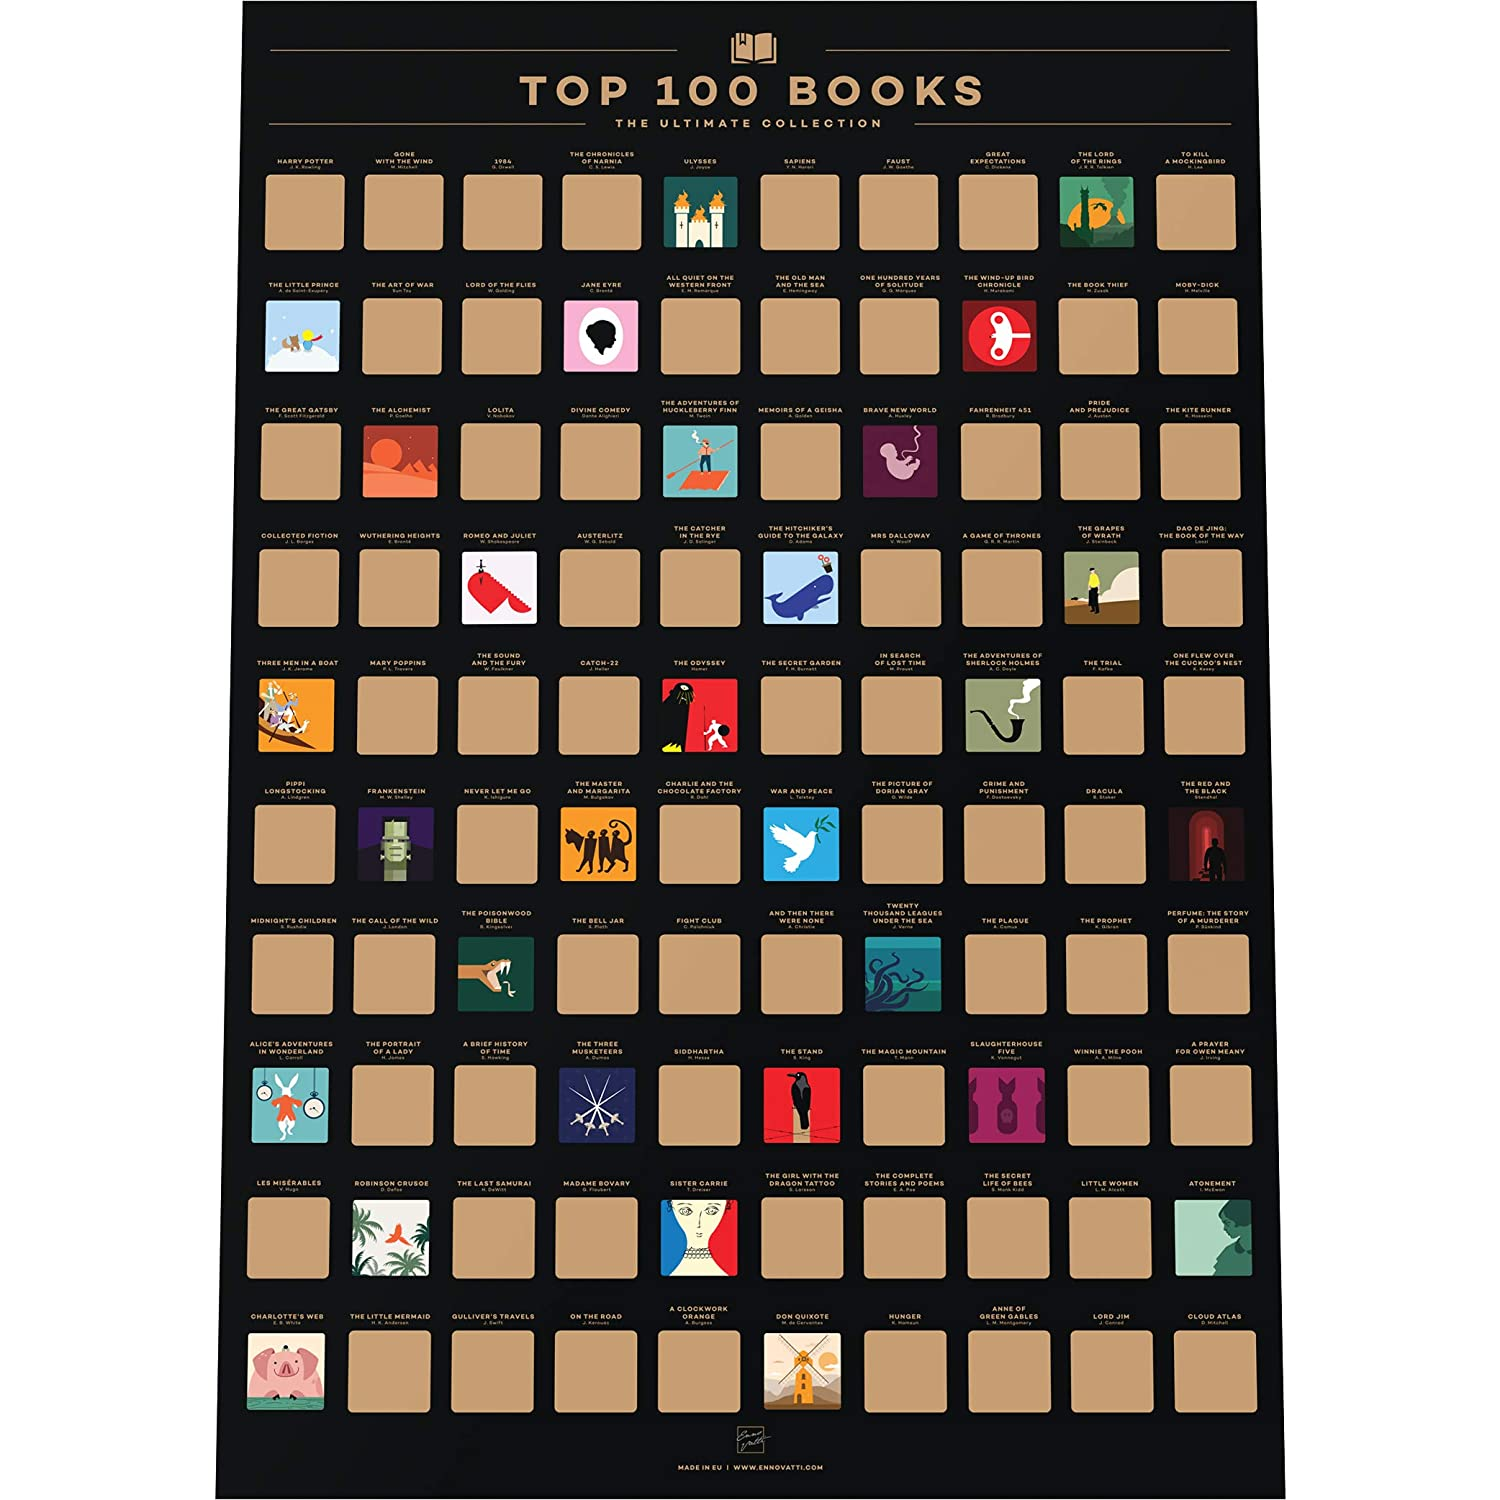 Enno Vatti 100 Books Scratch Off Poster - Top Reads of All Time Bucket List  (42 x 59 4 cm)